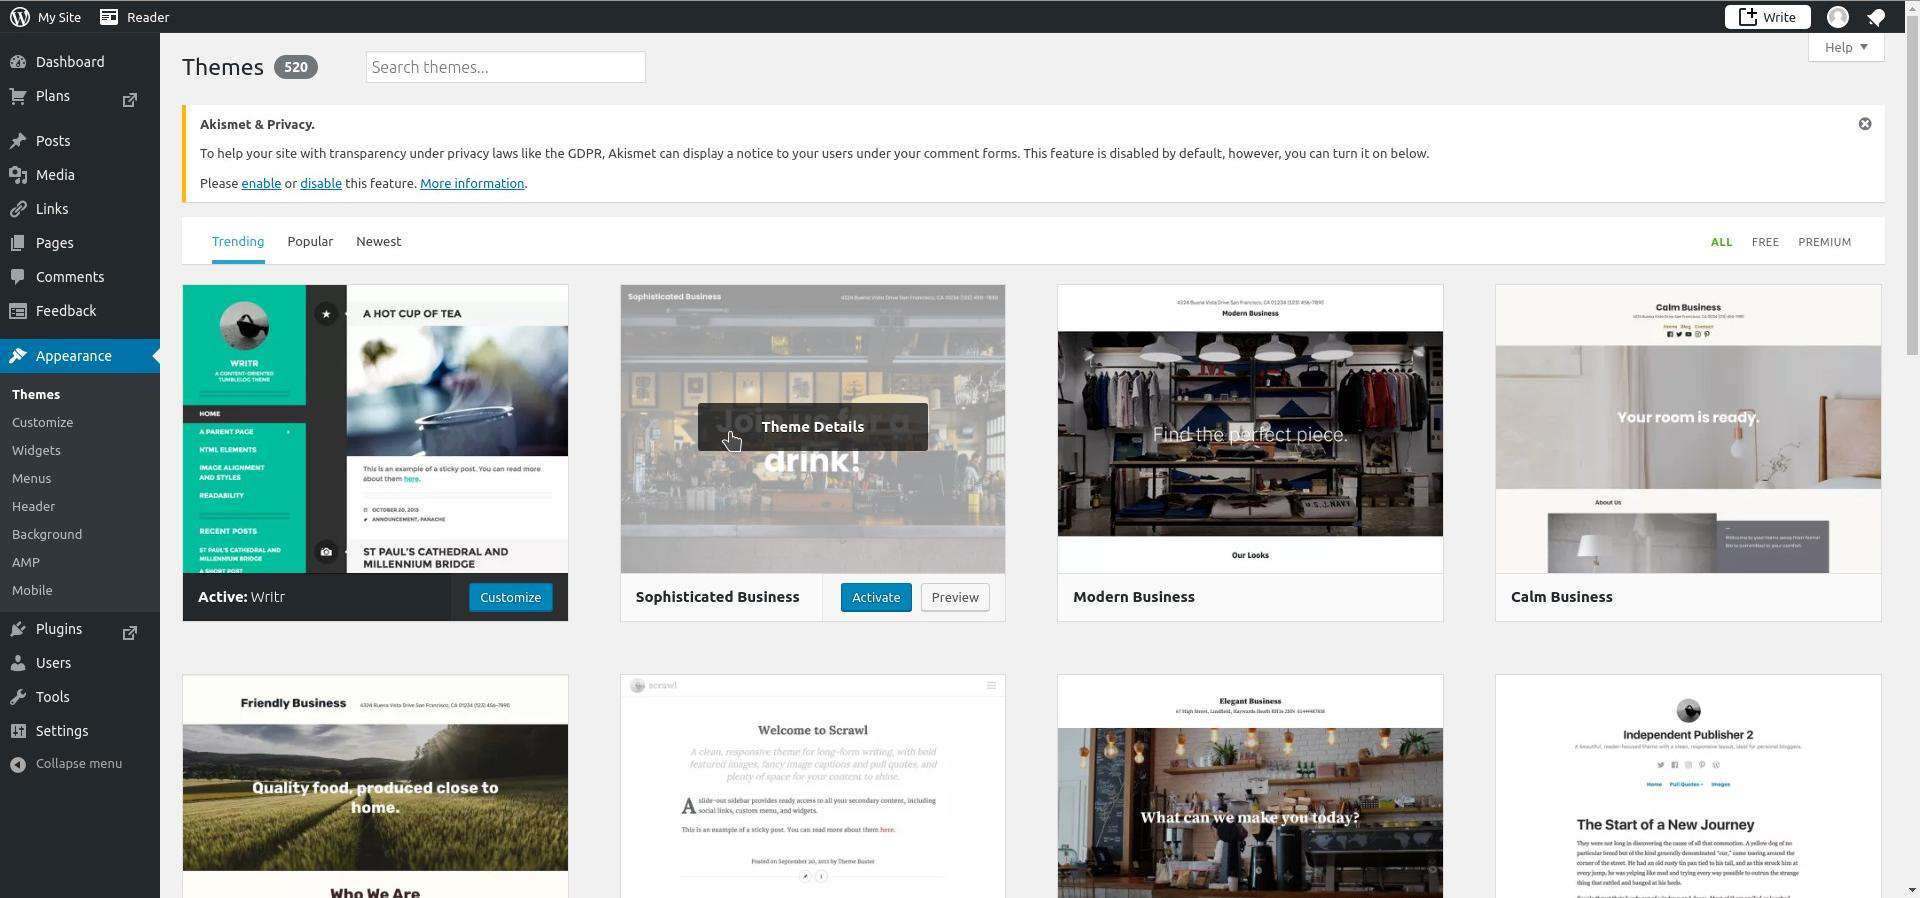 The Themes Screen Displays Free Themes You Can Use For Your Blog